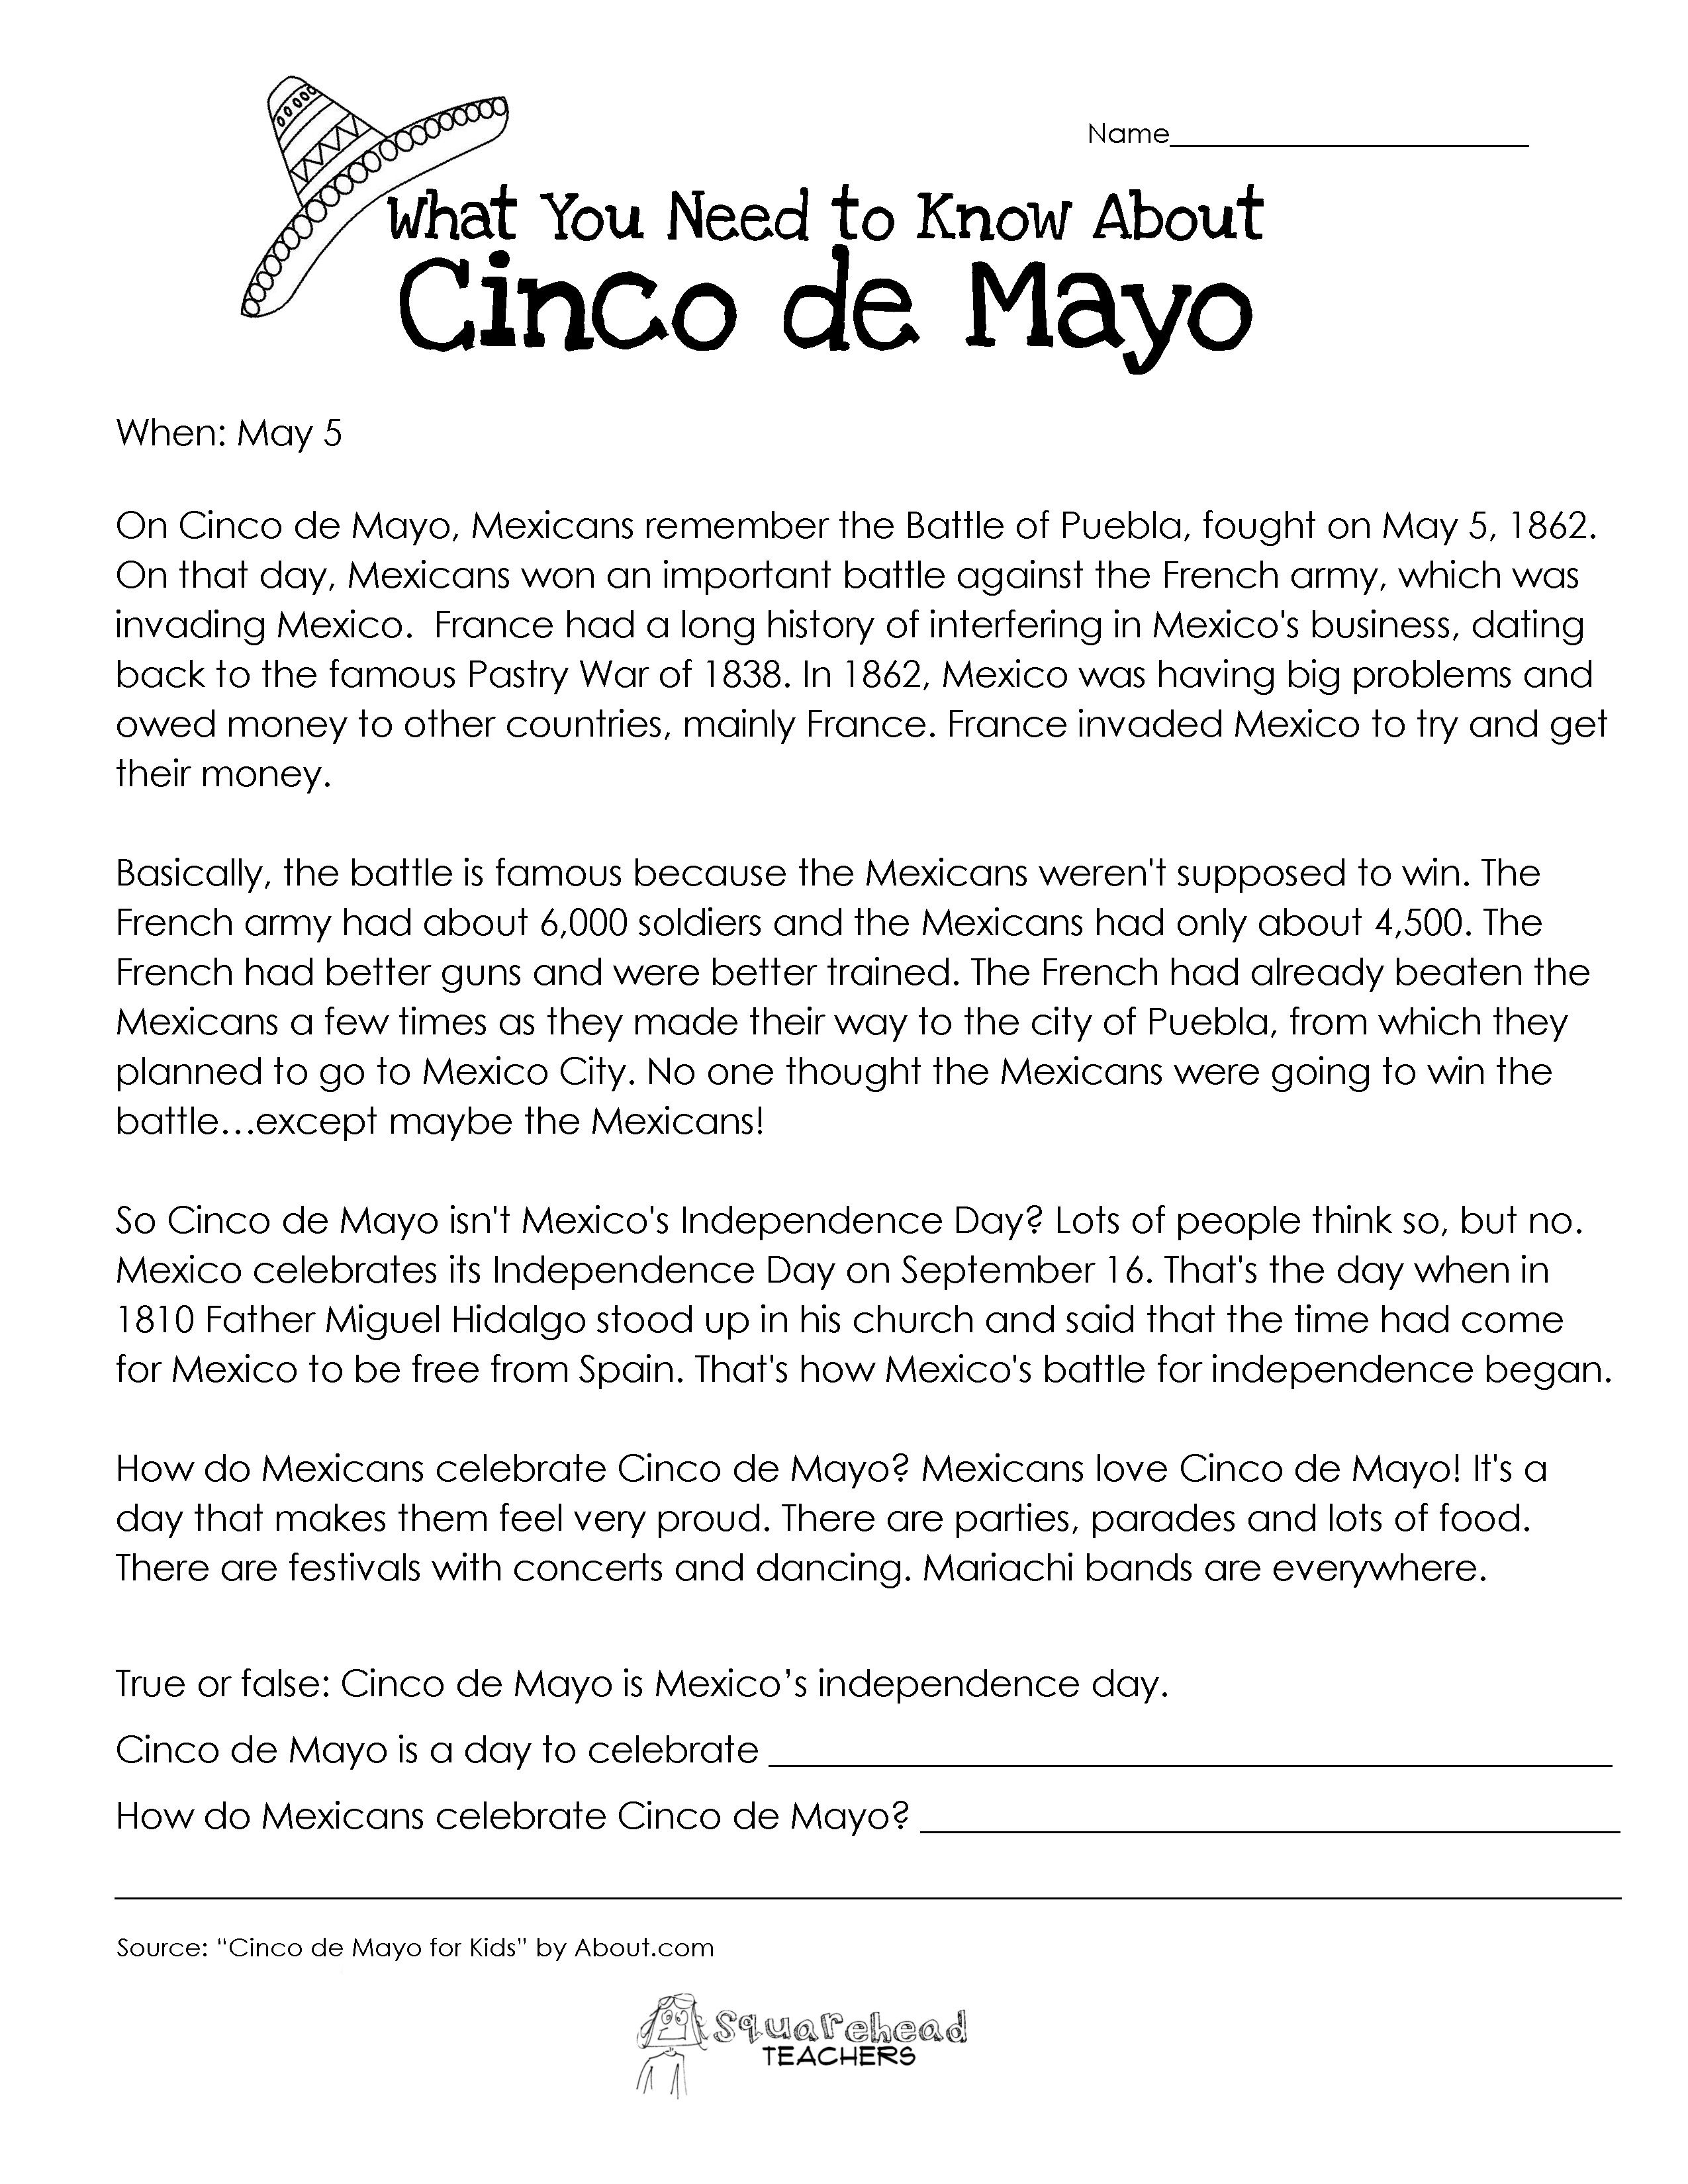 Printable coloring pages cinco de mayo - No Cinco De Mayo Isn T Mexico S Independence Day That S On September 16